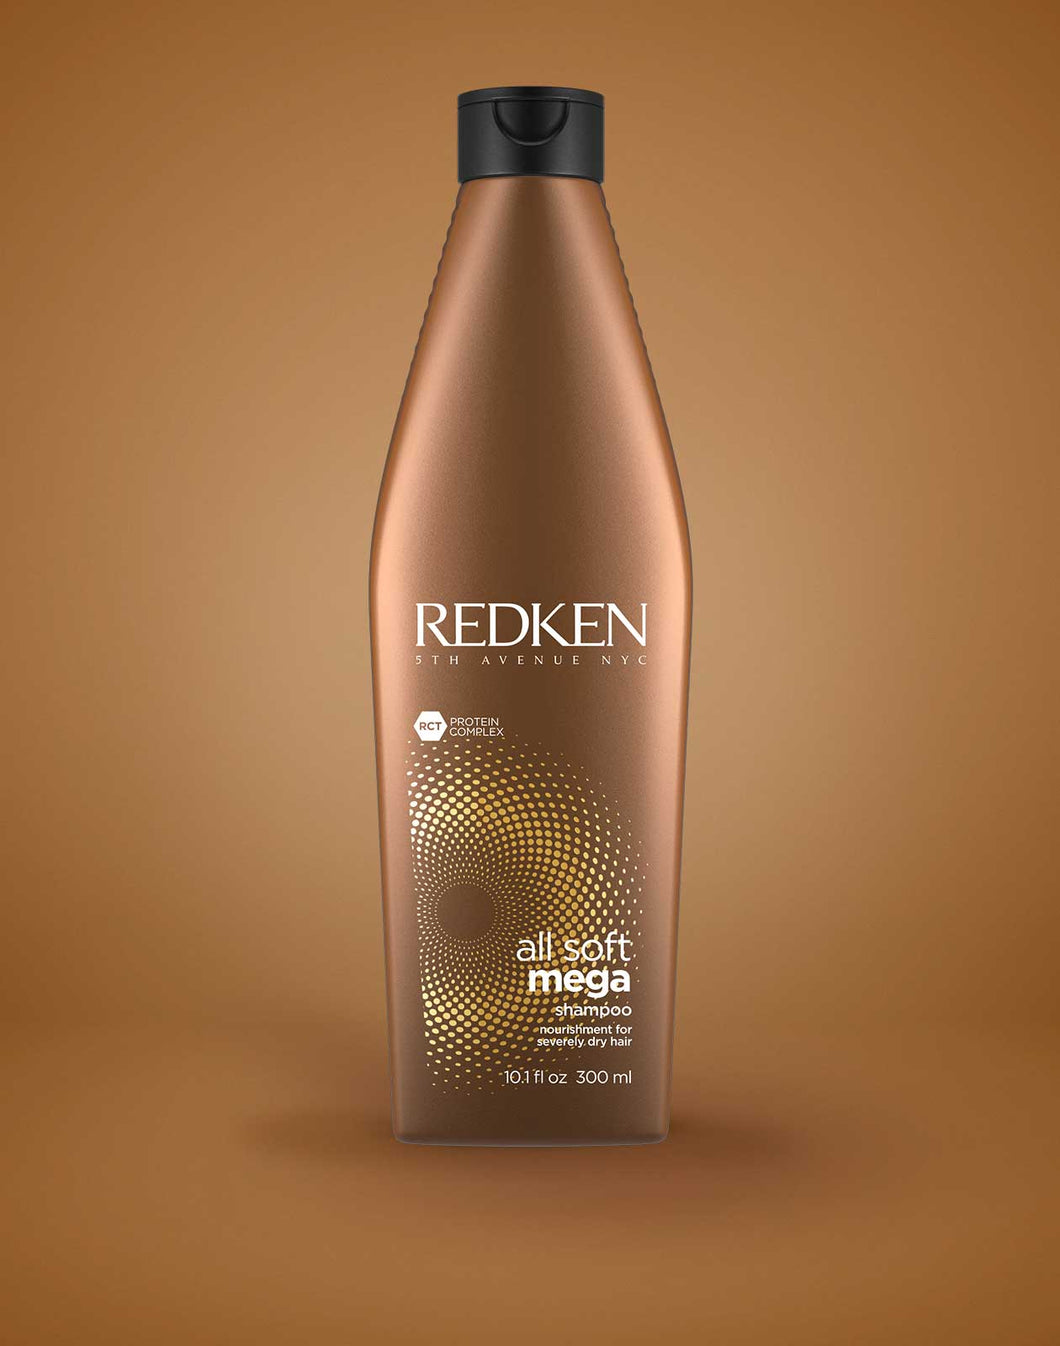 Redken ALL SOFT MEGA SHAMPOO - The Color Studio & Salon